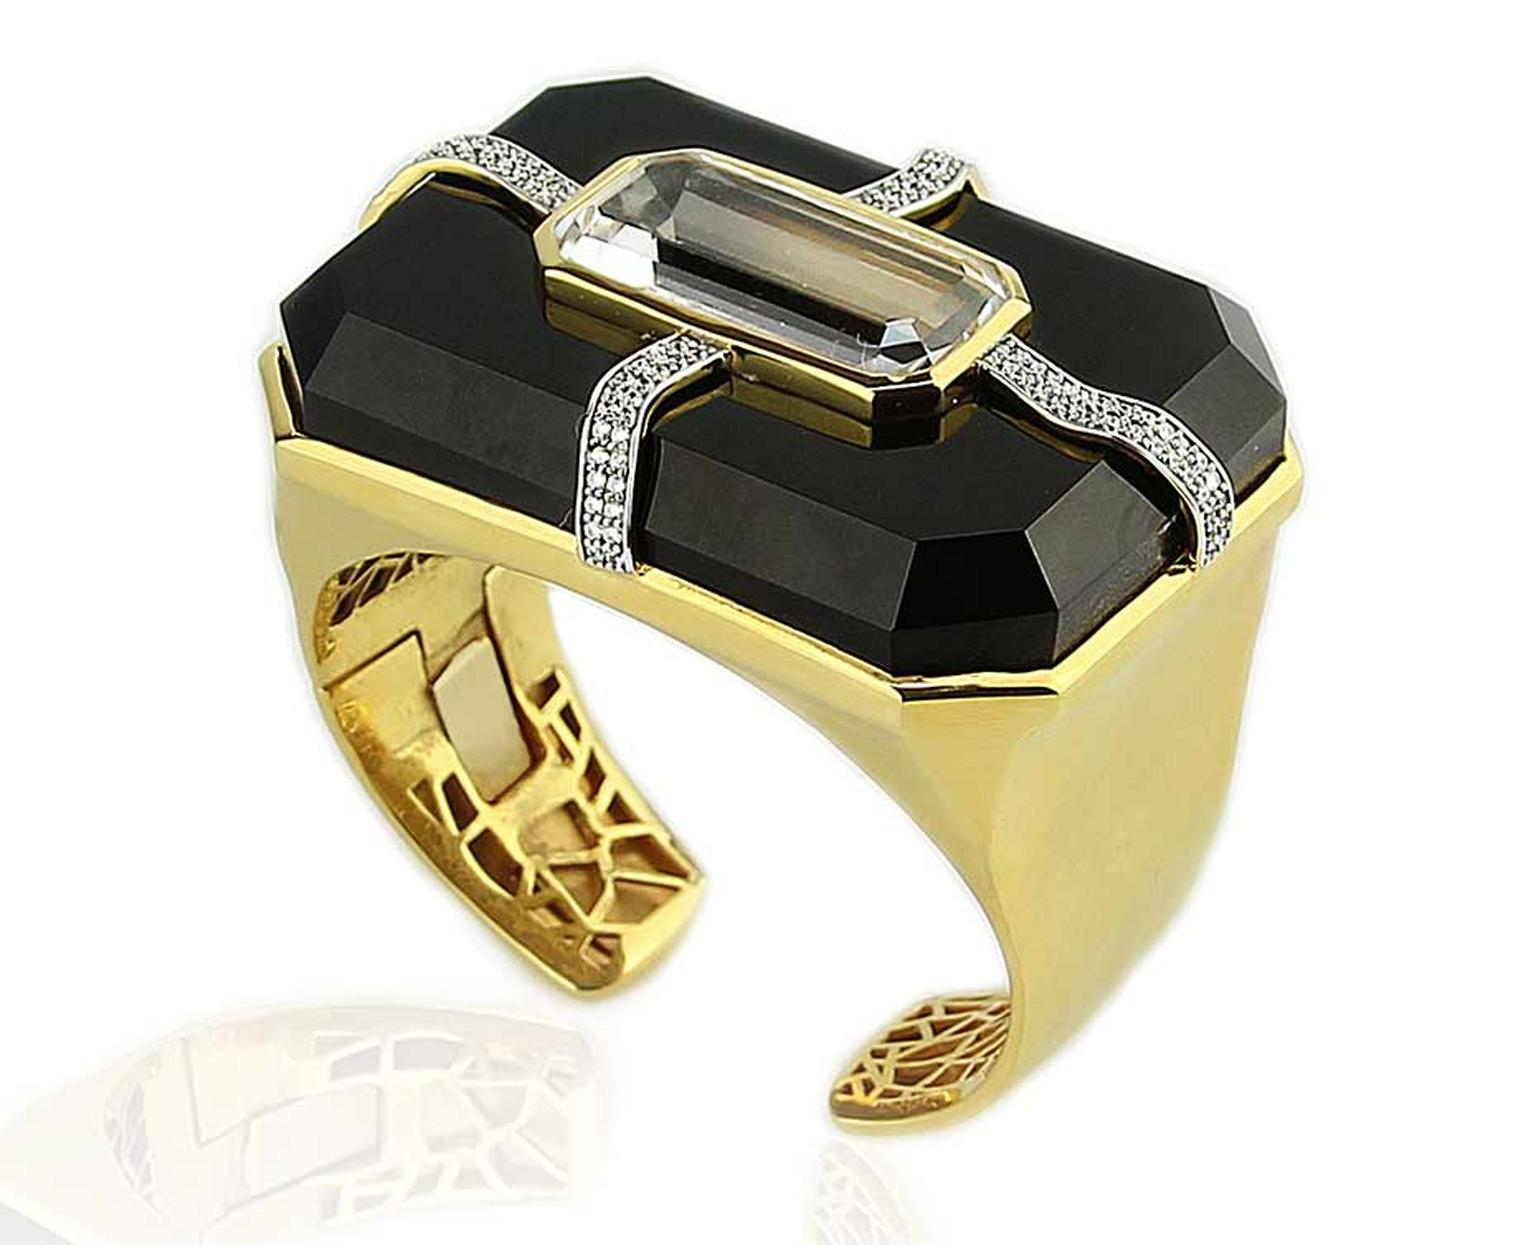 Kara Ross Large Cava Cuff with Pangea Accent in yellow gold with a black onyx base, rock crystal inset and diamonds